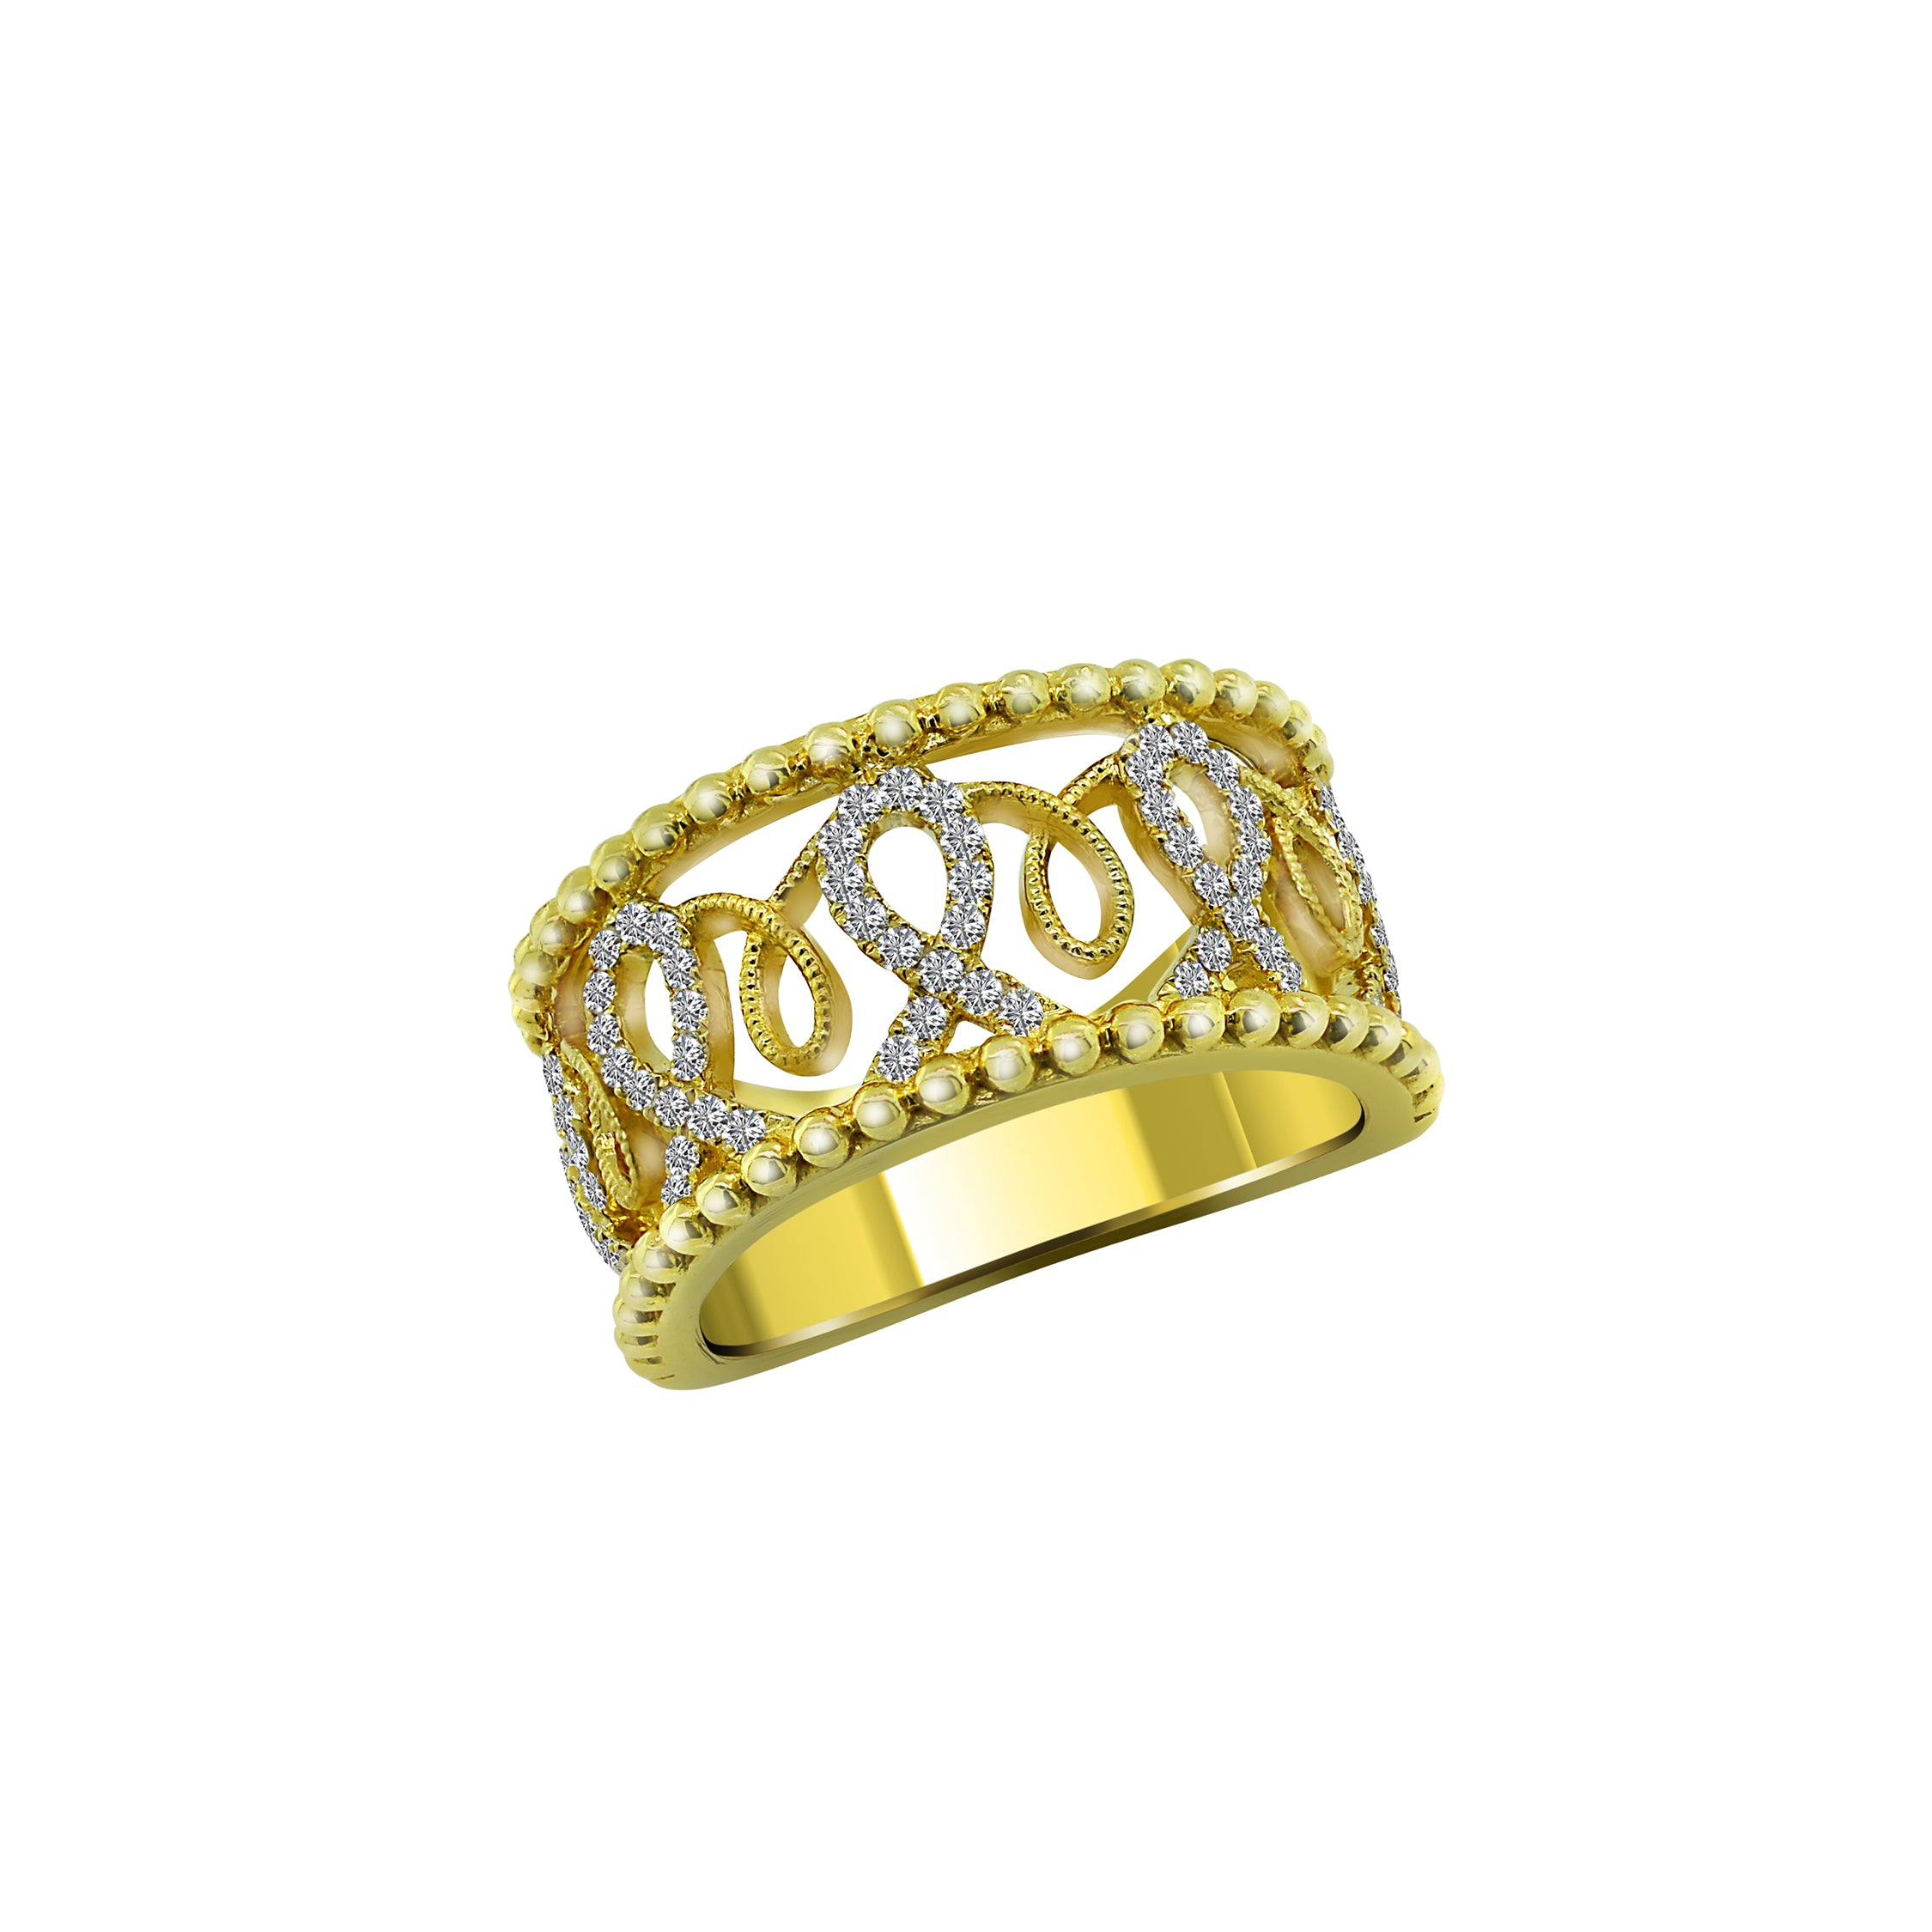 14K Yellow Gold with Diamond Ring, Rings, Nazar's & Co. - Nazar's & Co.